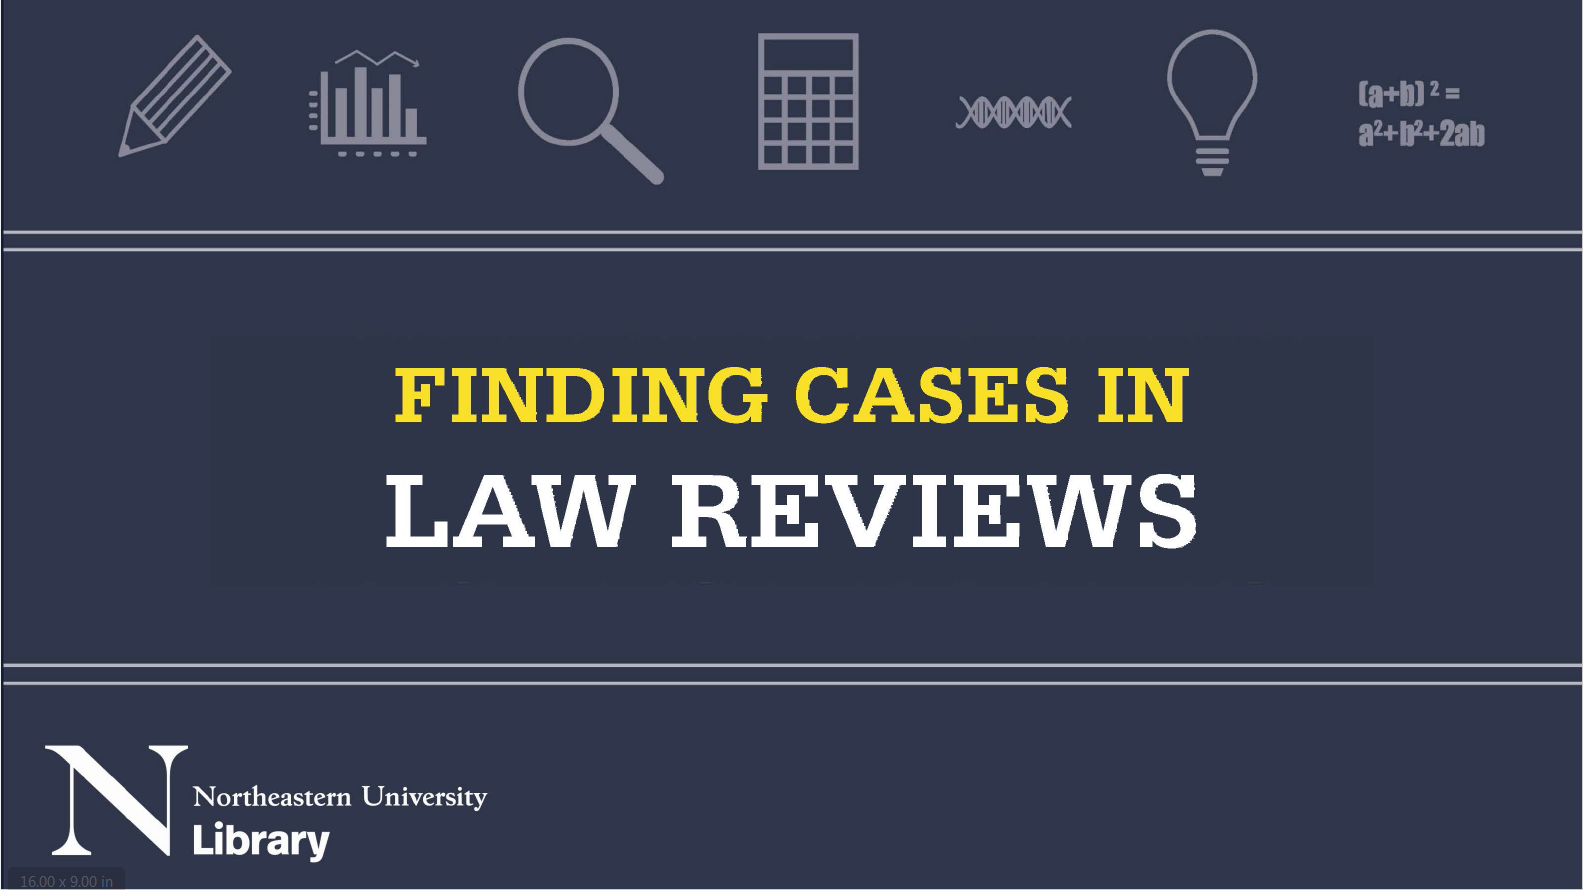 Finding cases in law reviews